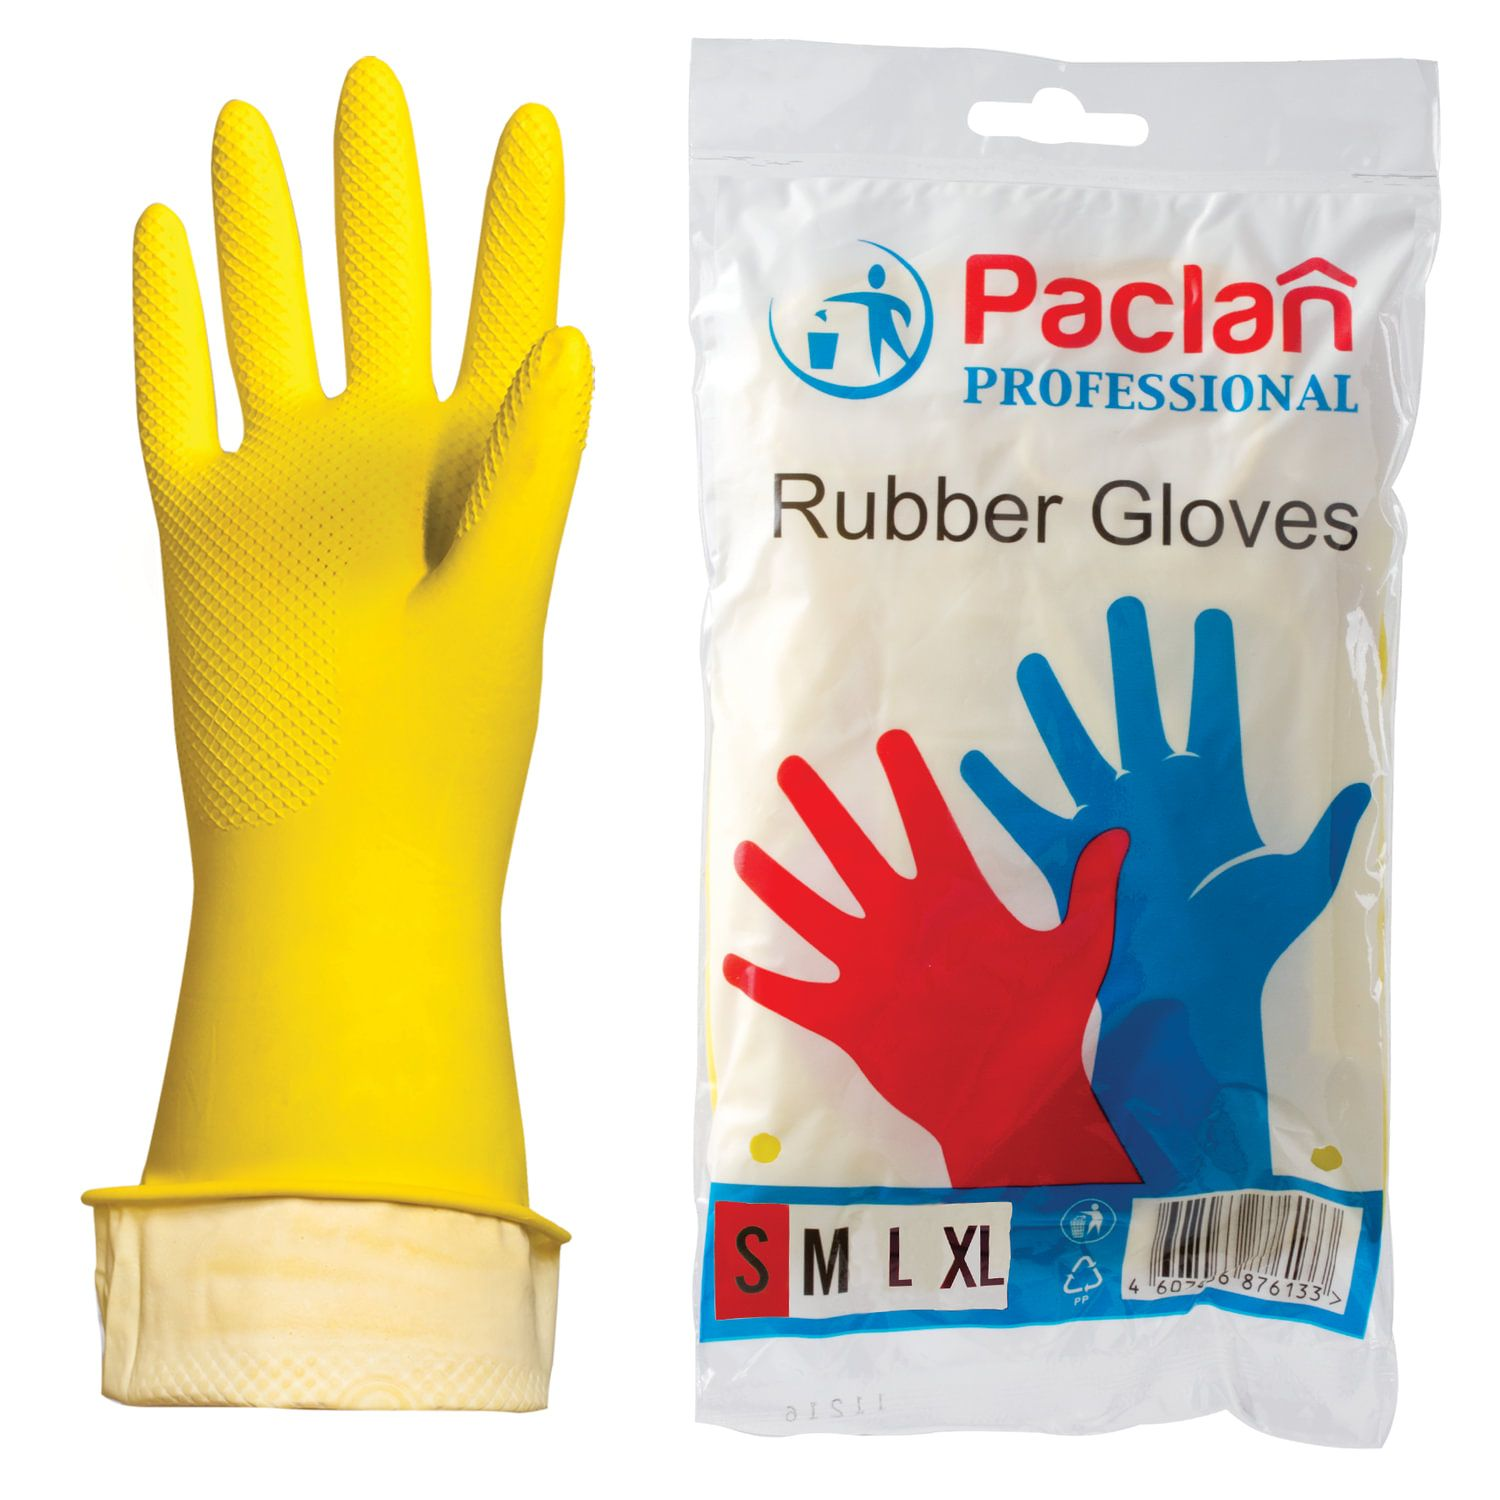 PACLAN / Professional latex household gloves with cotton spraying, size S (small), yellow